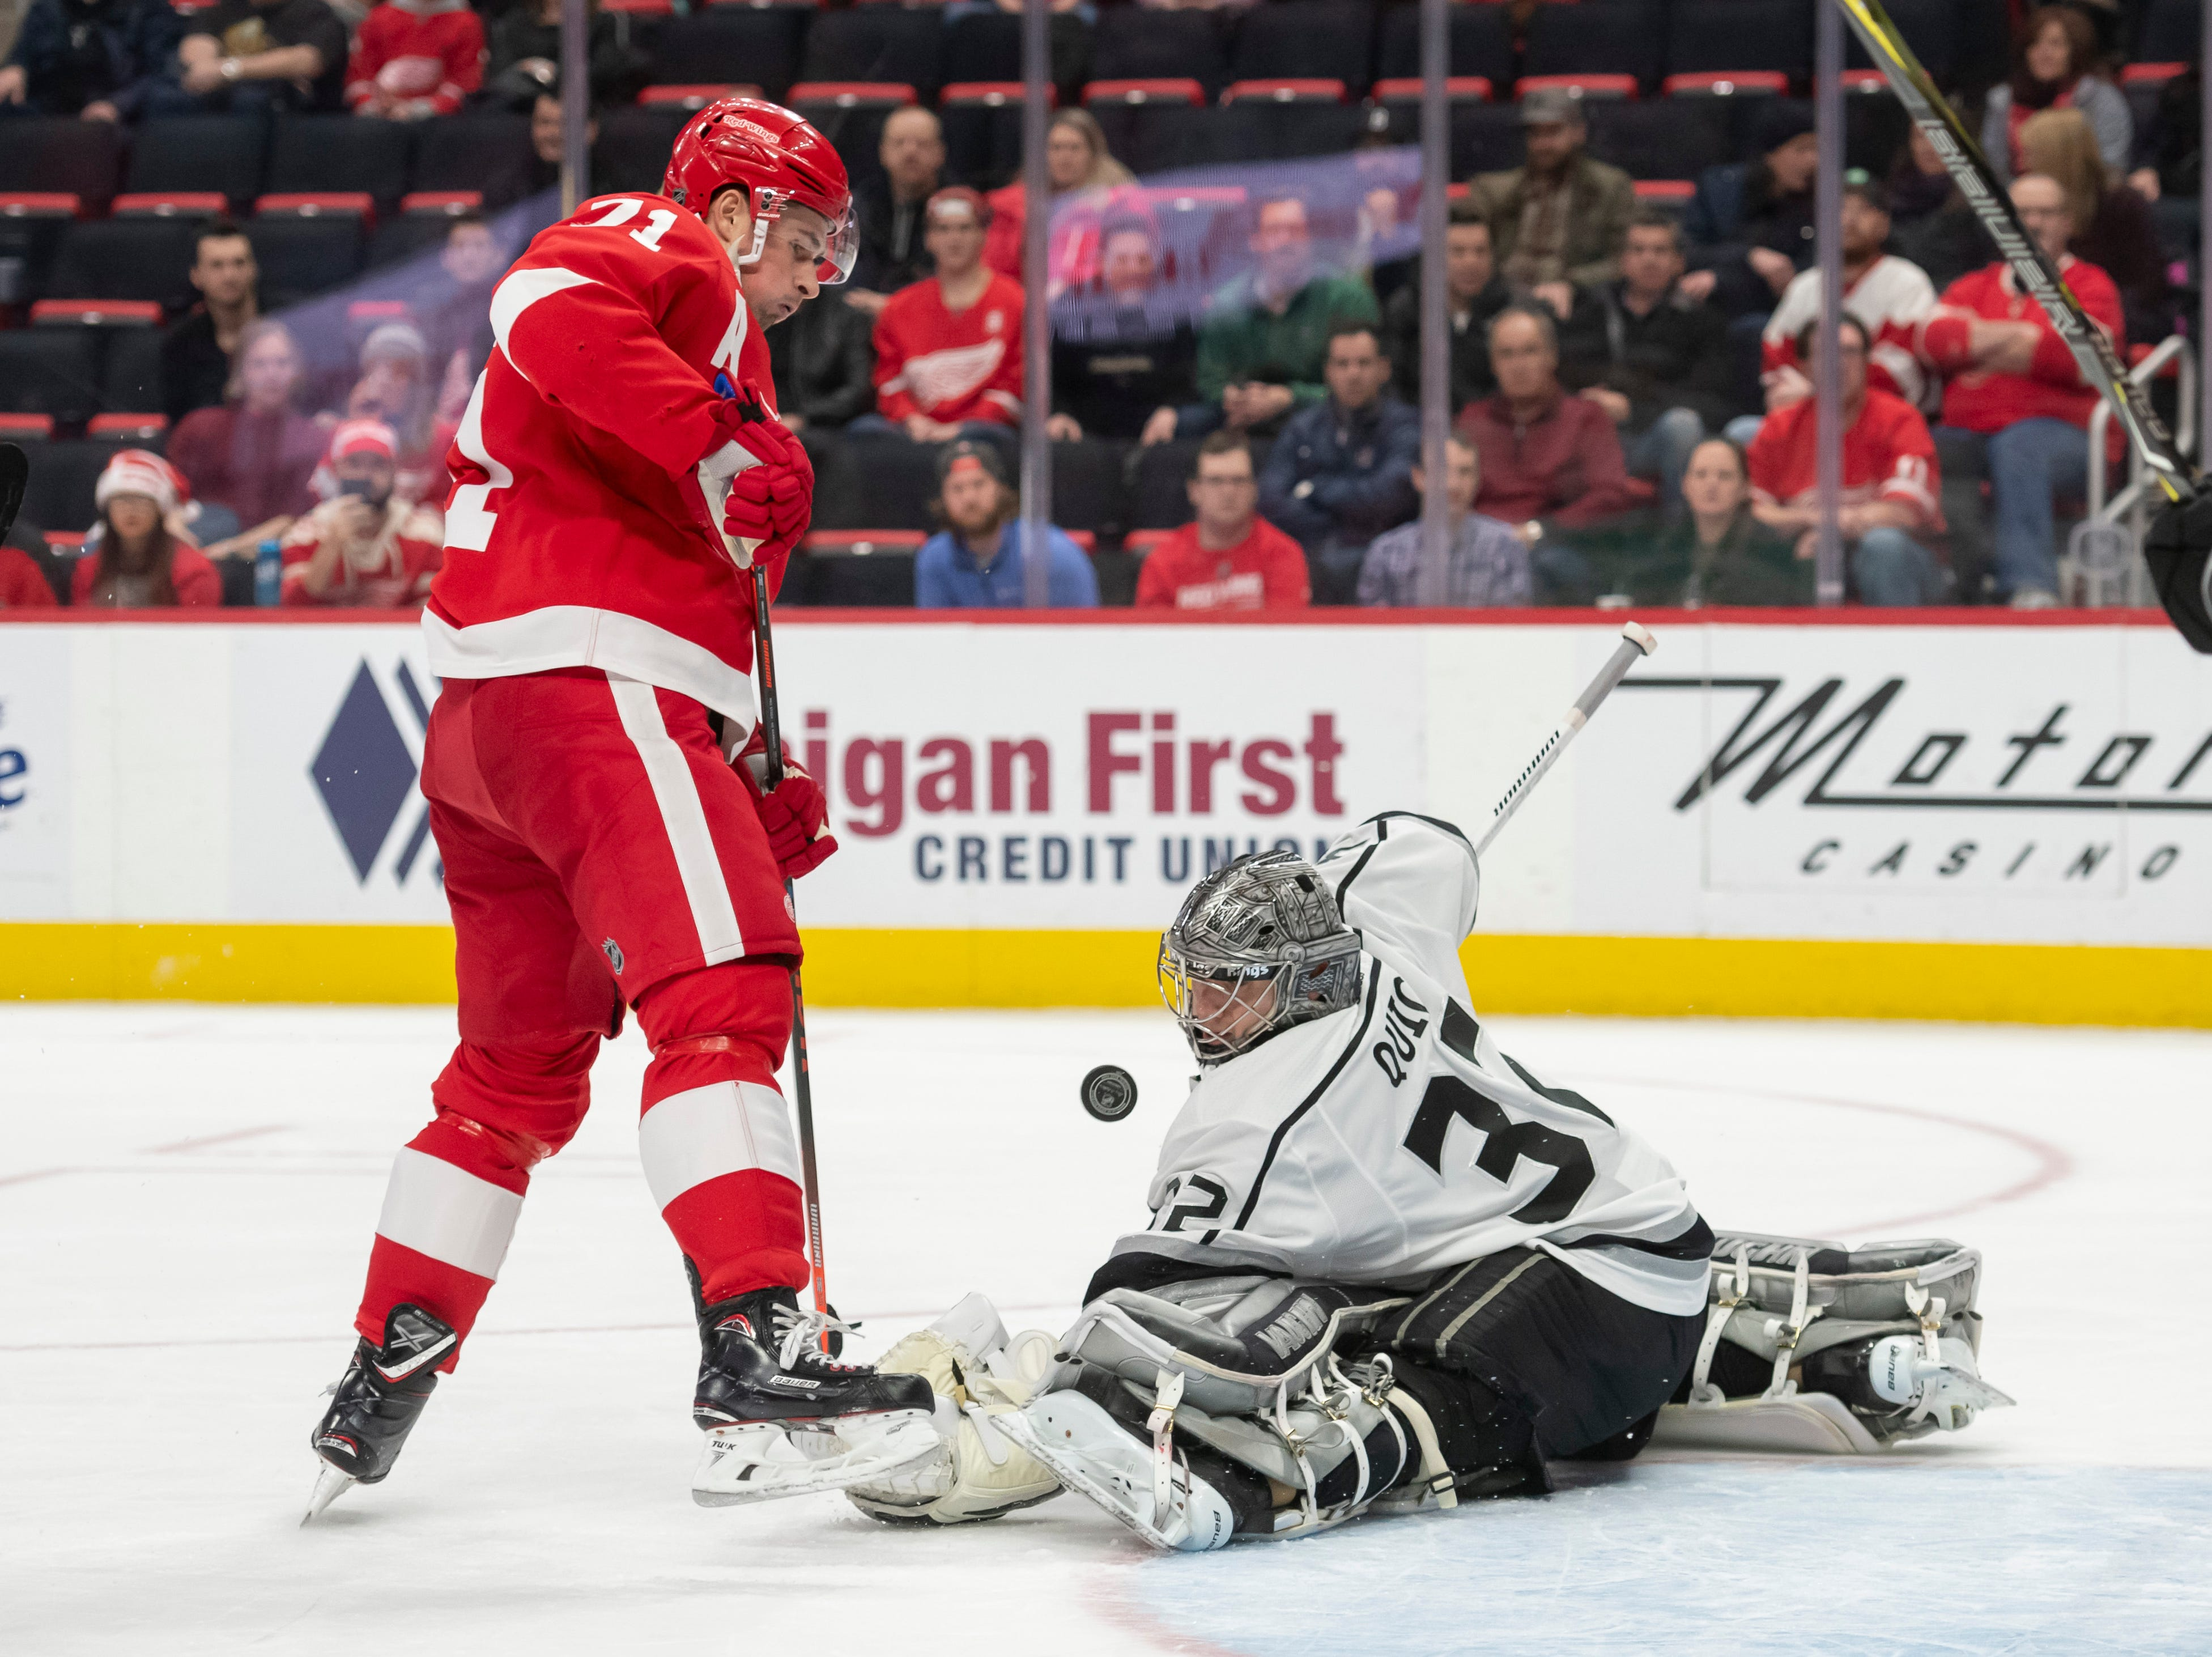 Detroit center Dylan Larkin gets a shot blocked by Los Angeles goaltender Jonathan Quick in the third period.